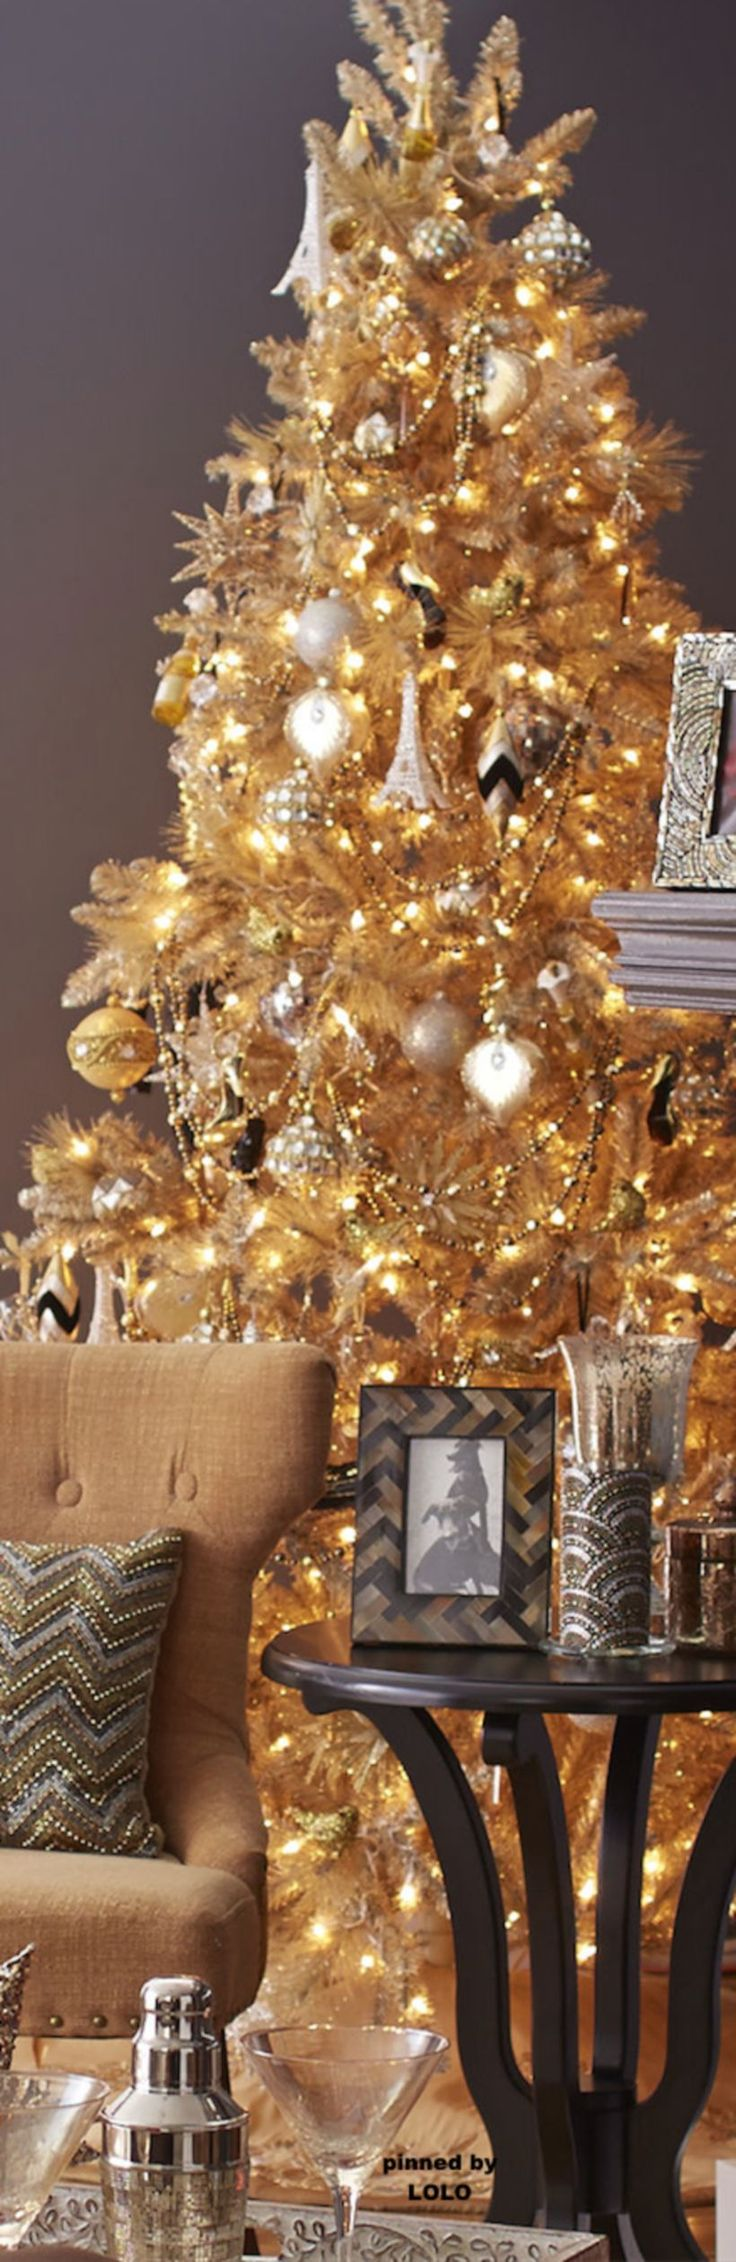 cool 55 Gorgeous Christmas Décoration Ideas with Sparkling Gold Theme https://about-ruth.com/2017/10/25/55-gorgeous-christmas-decoration-ideas-sparkling-gold-theme/